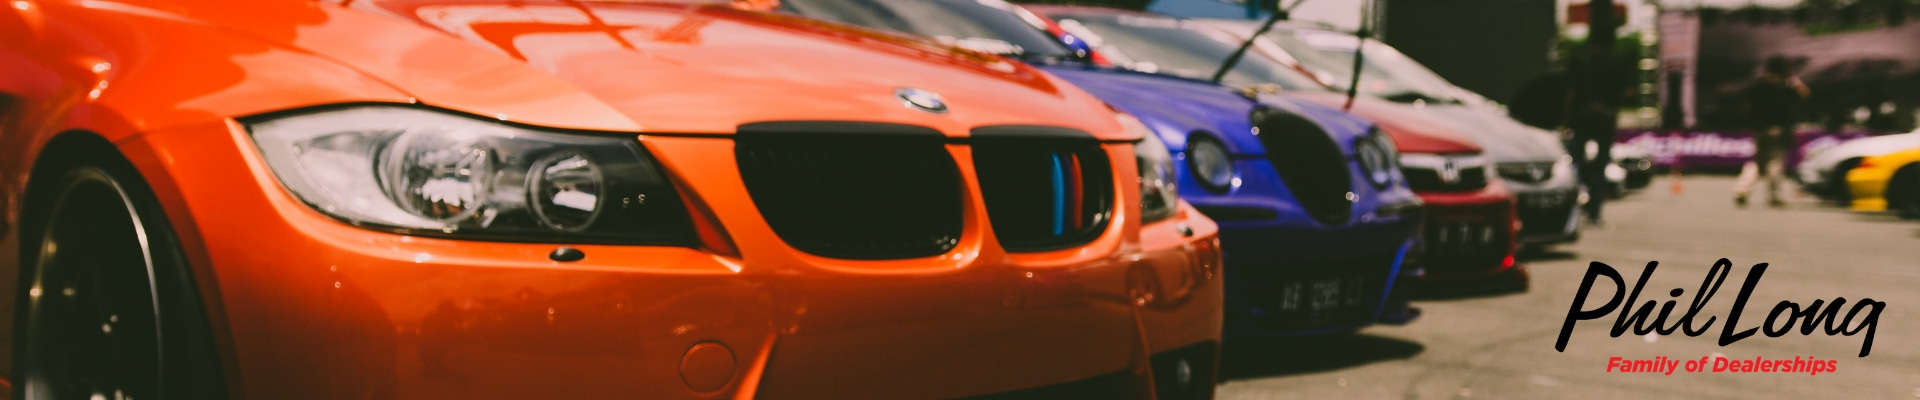 Close up view of an orange used BMW car at the front of a line of used cars on display